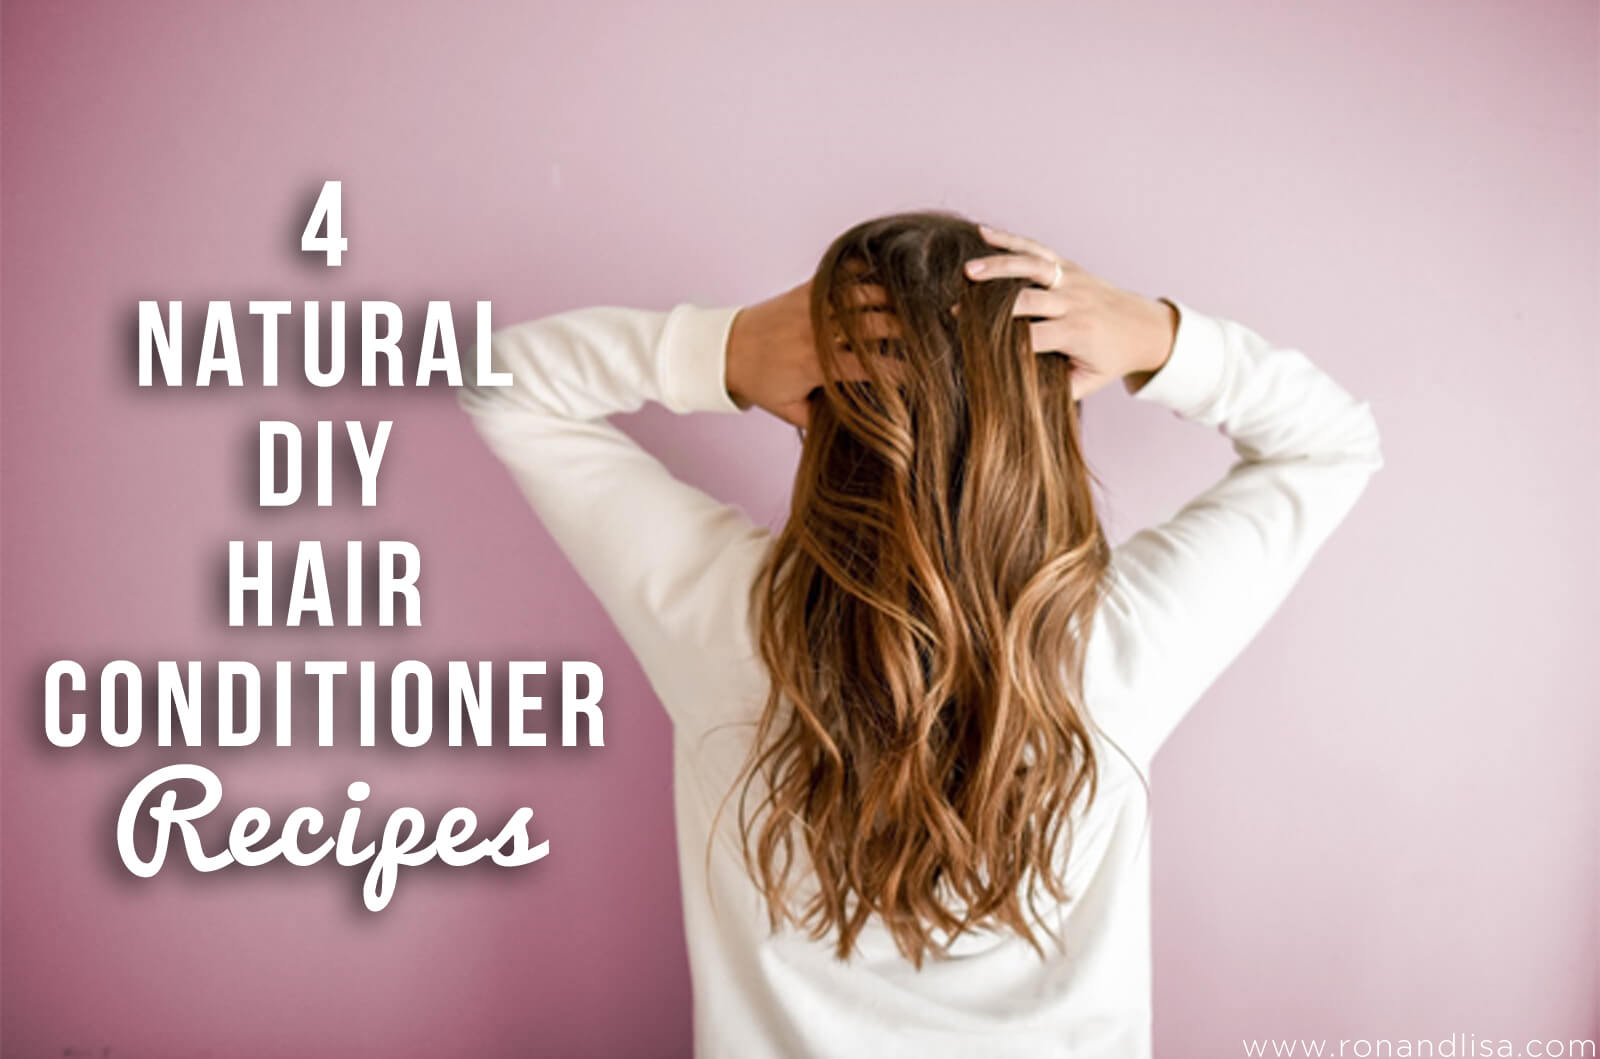 4 Natural DIY Hair Conditioner Recipes